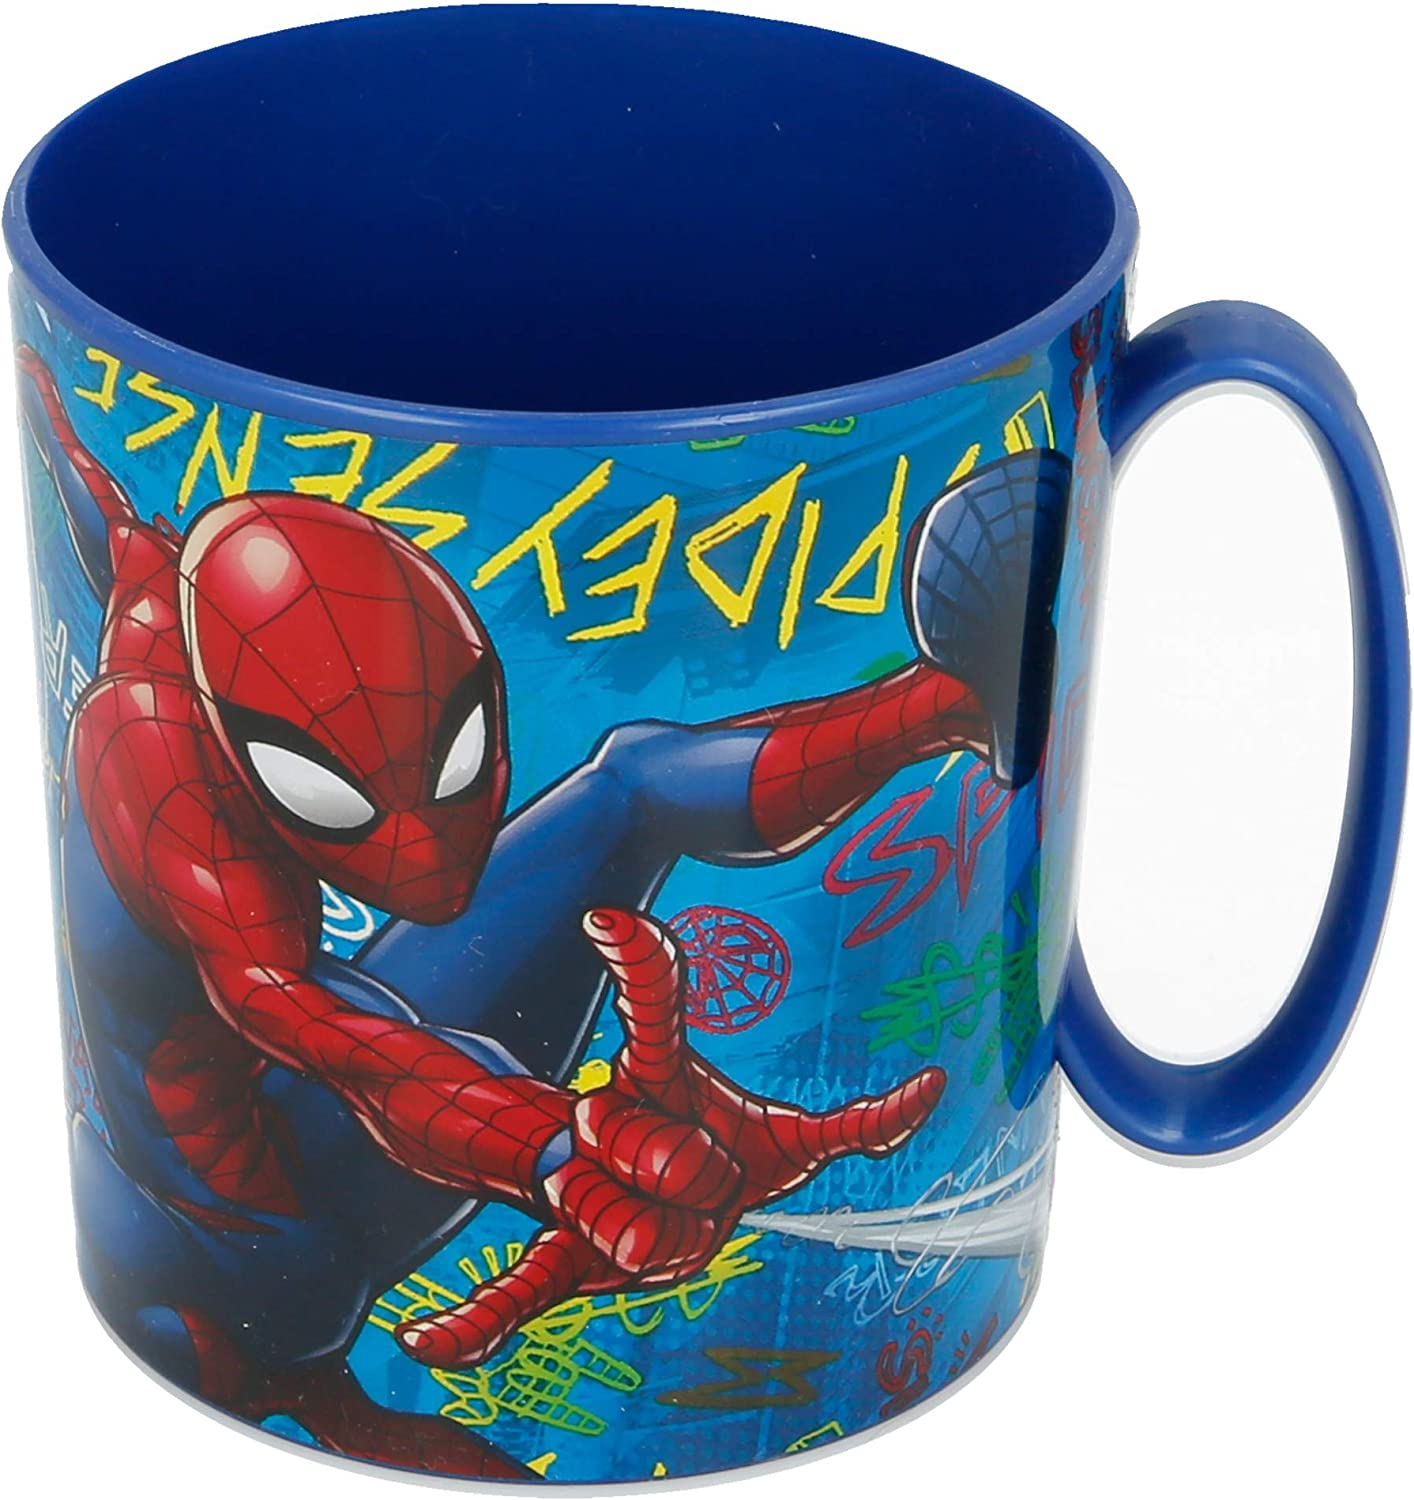 TAZA MICRO 350 ML | SPIDERMAN GRAFFITI